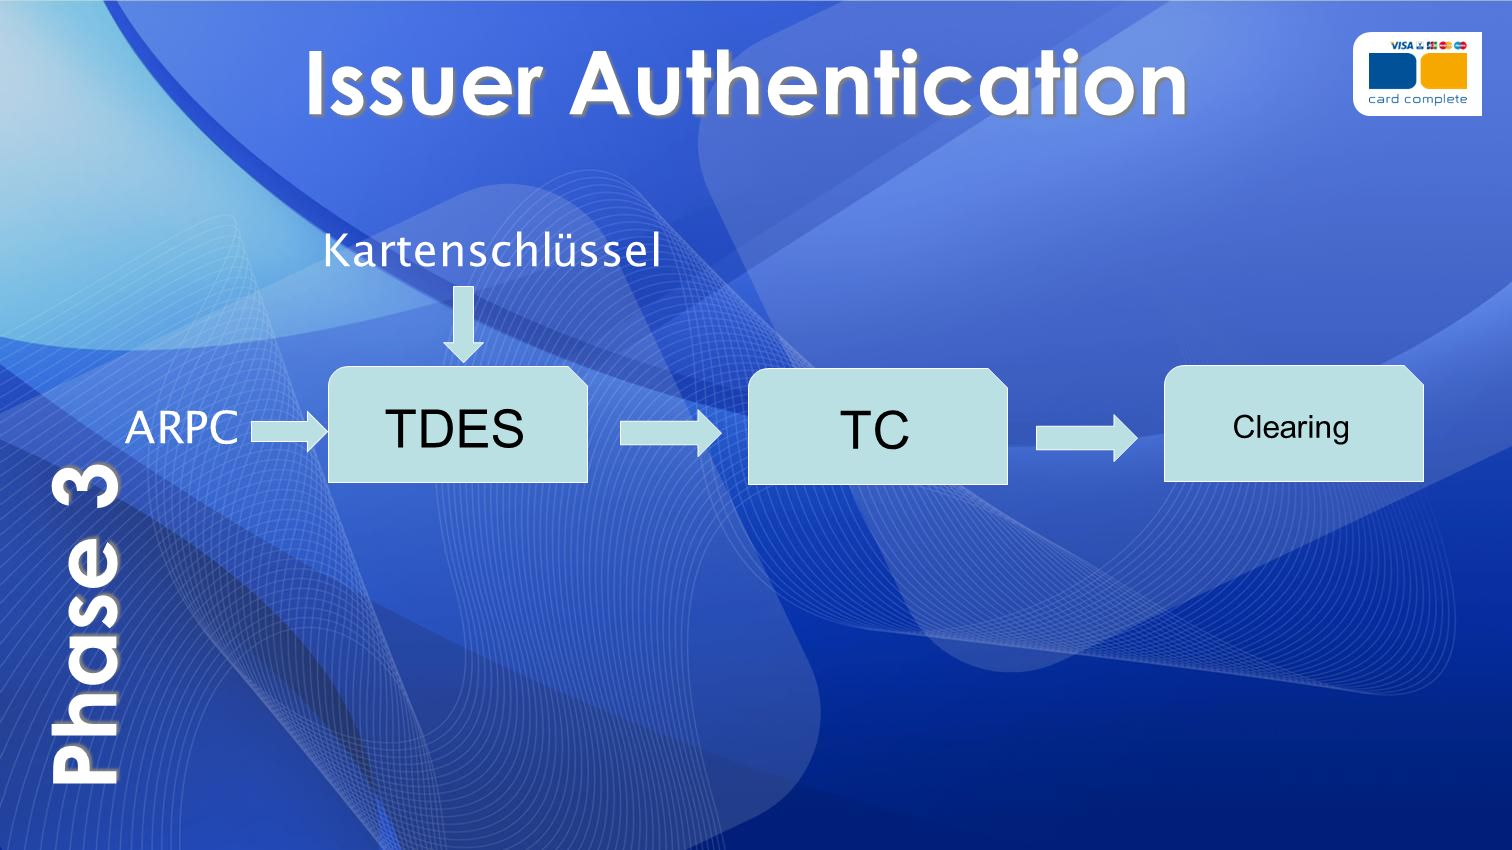 Issuer Authentication